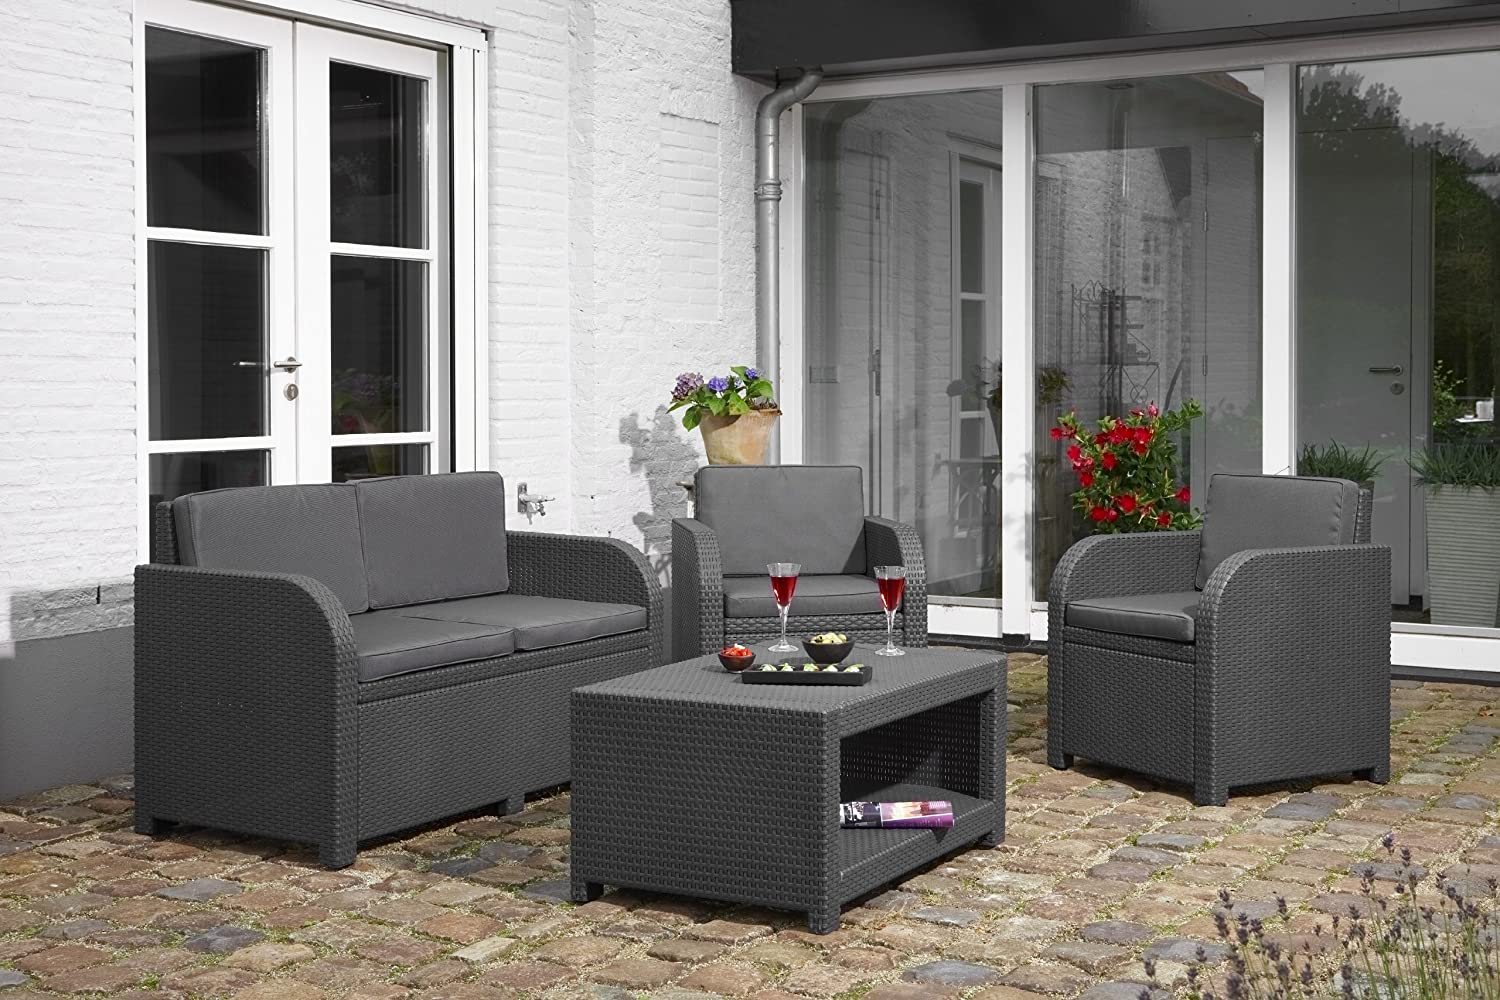 Amazon.de: Allibert Lounge-Set Modena 4tlg, graphit/cool grey